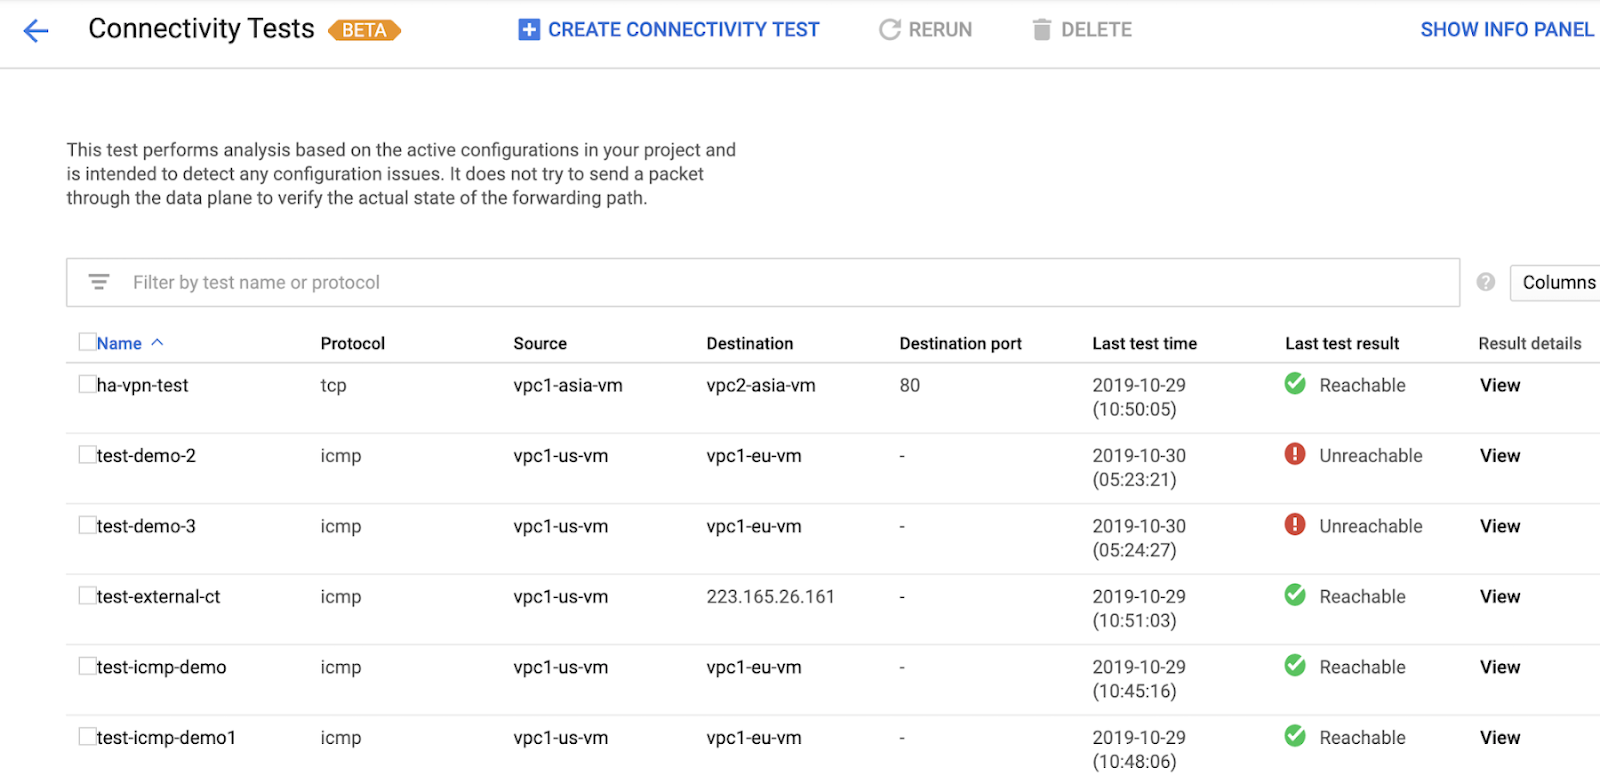 Create__save_connectivity_tests.max-1800x1800.png